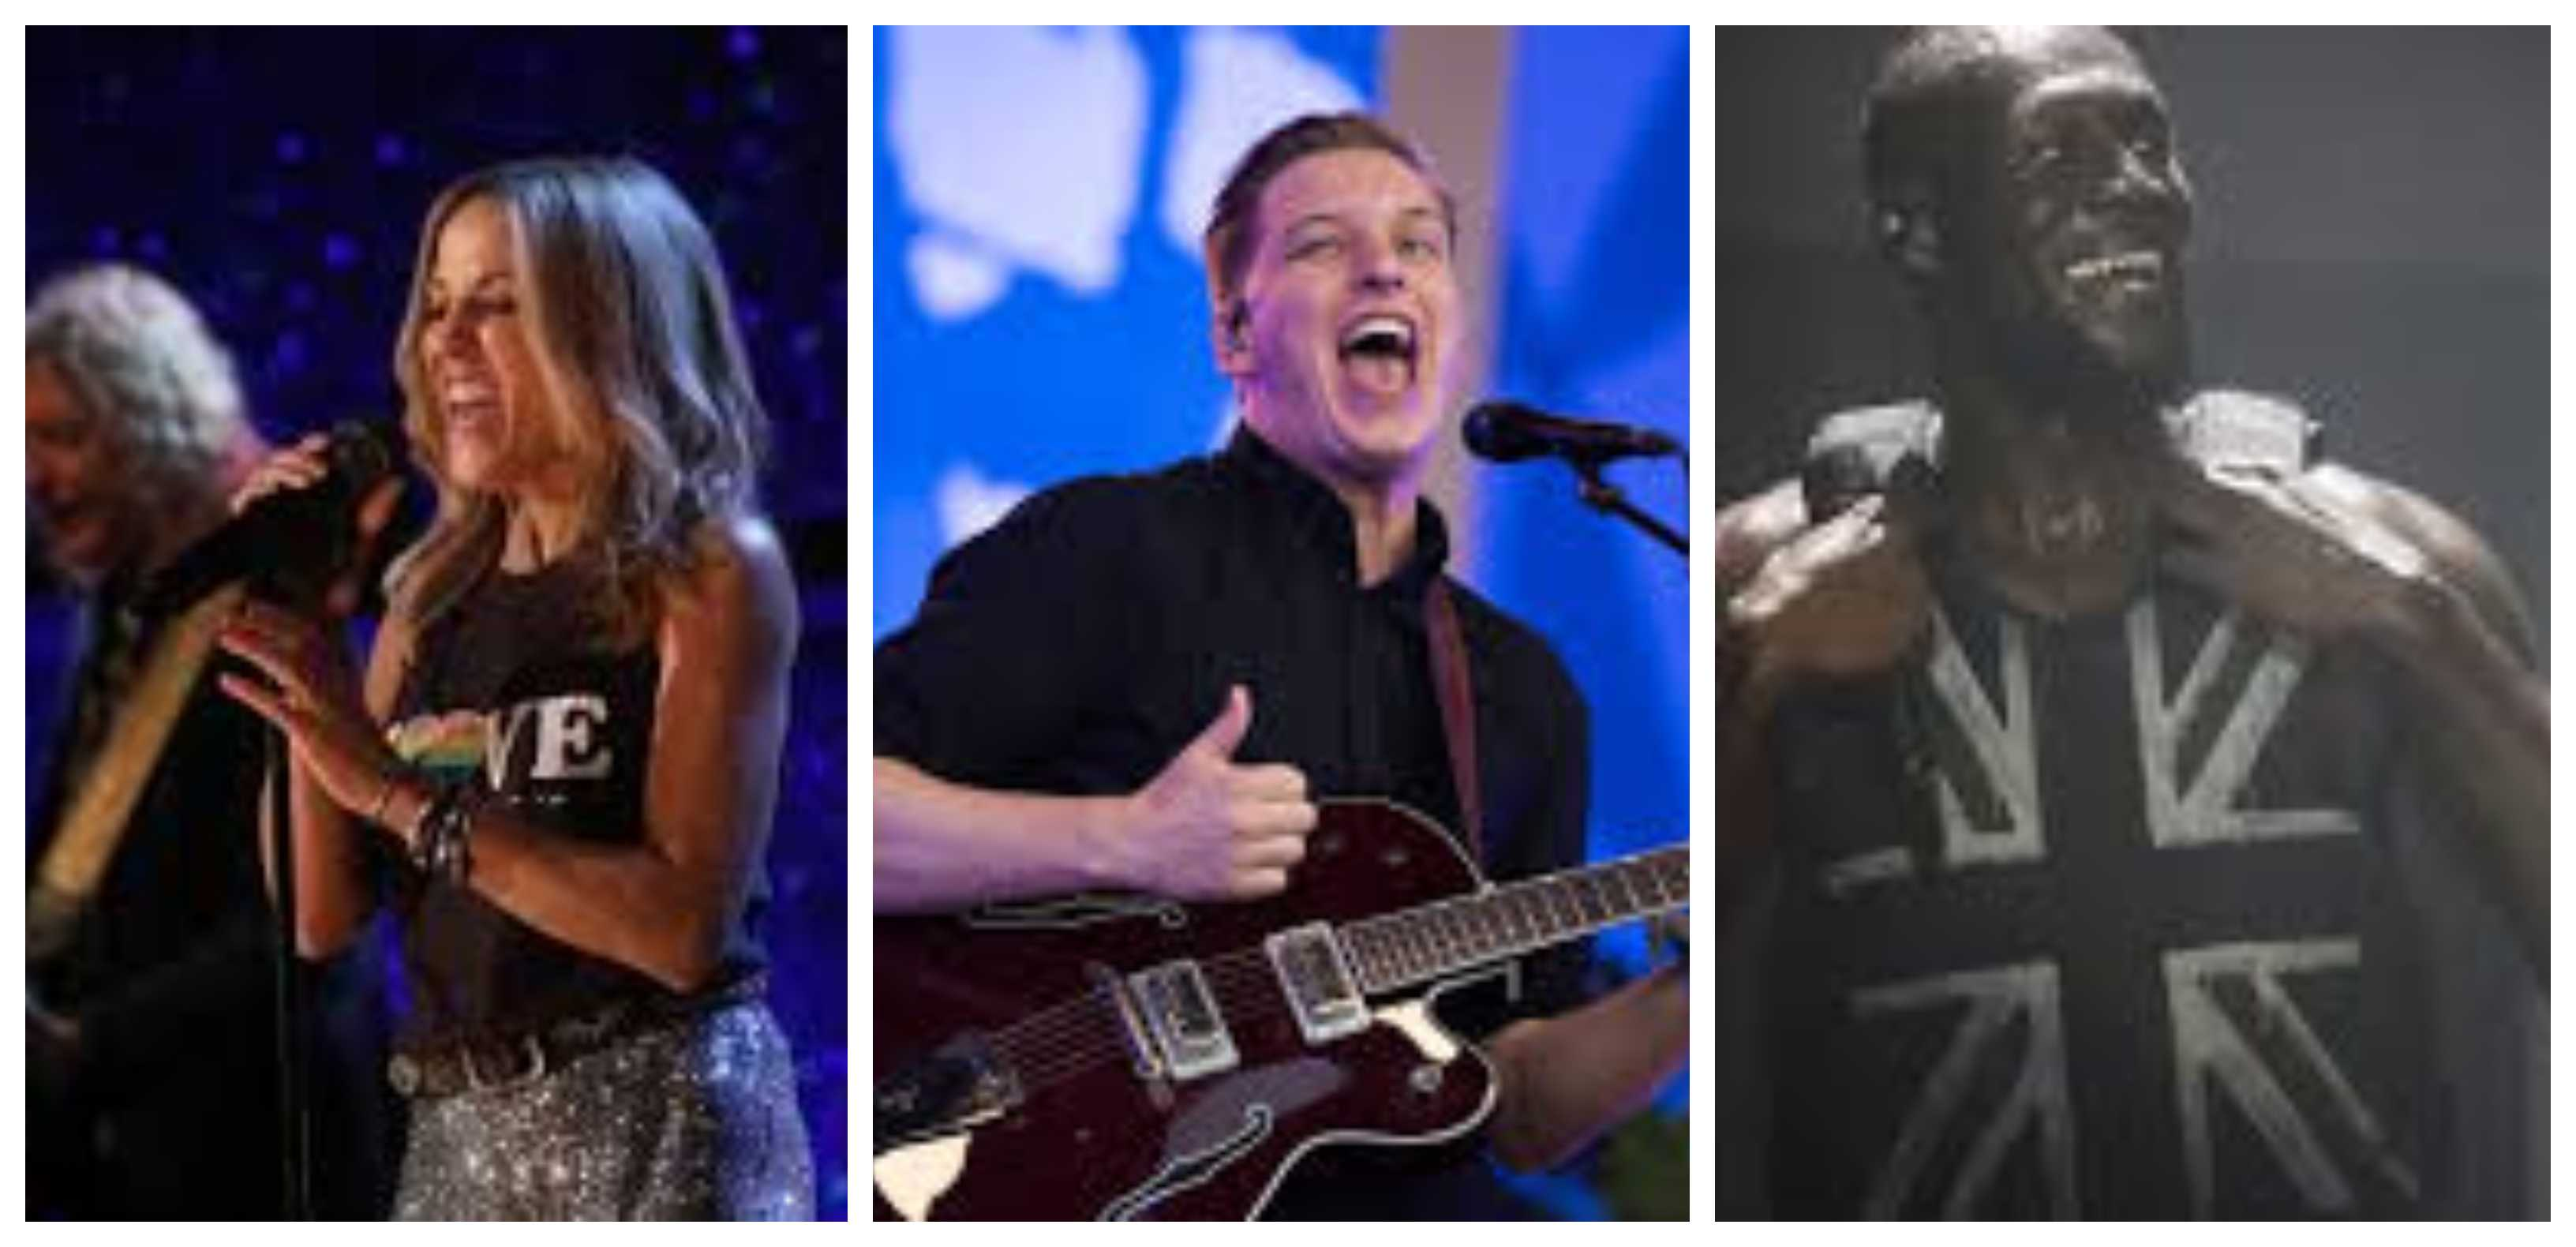 Stormzy, George Ezra and Sheryl Crow delivers at Glastonbury